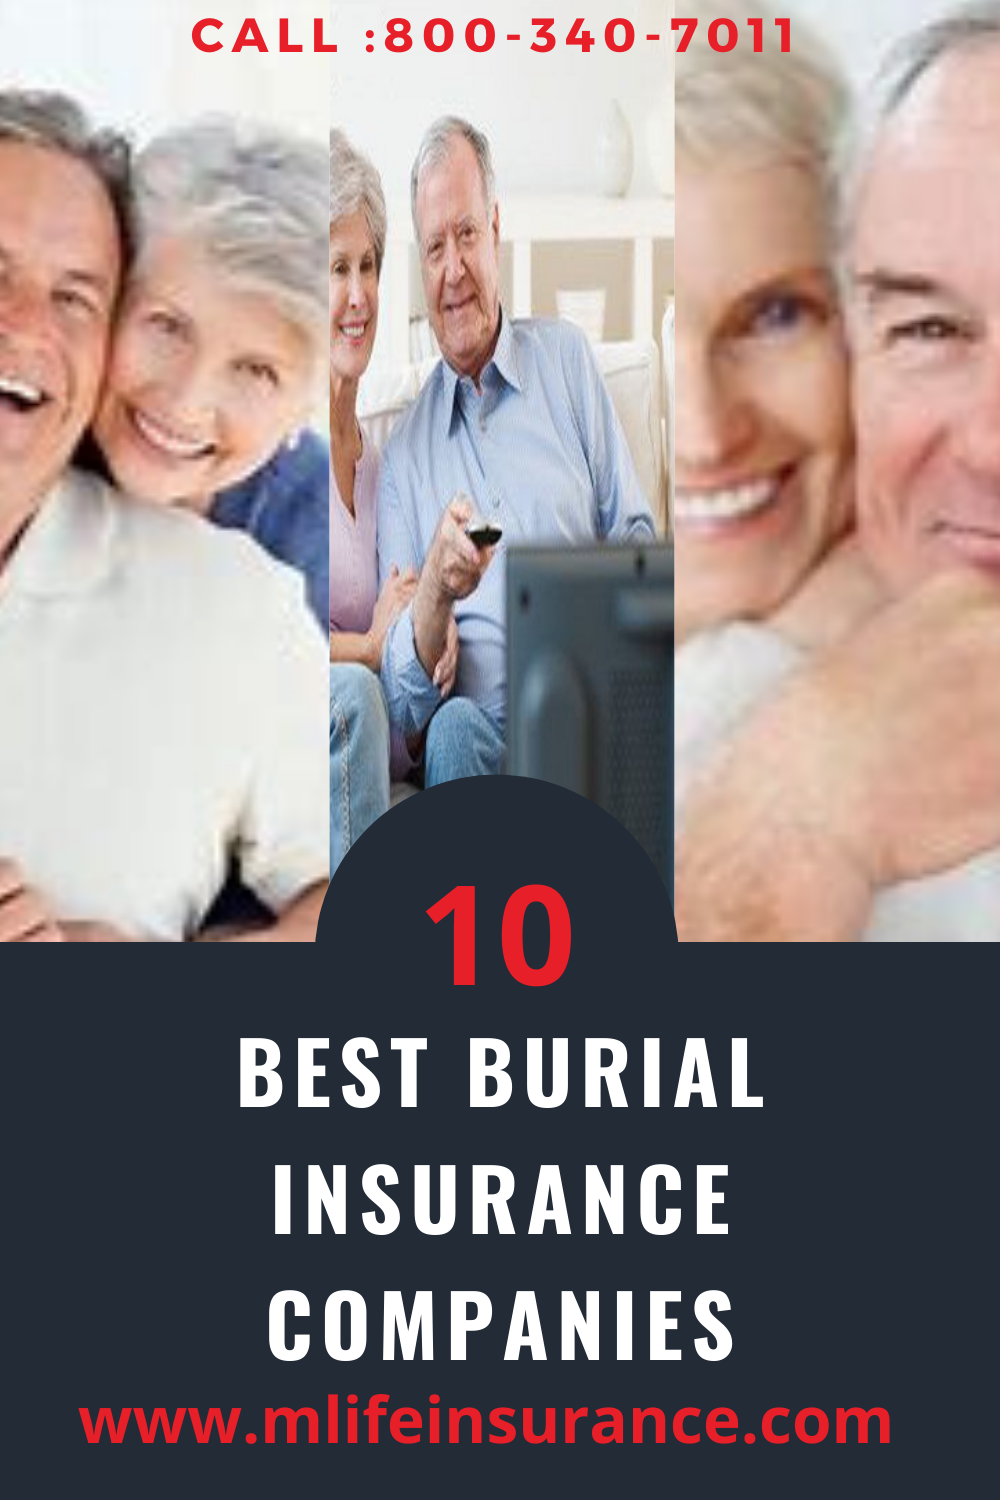 Pin On Best Burial Insurance Companies